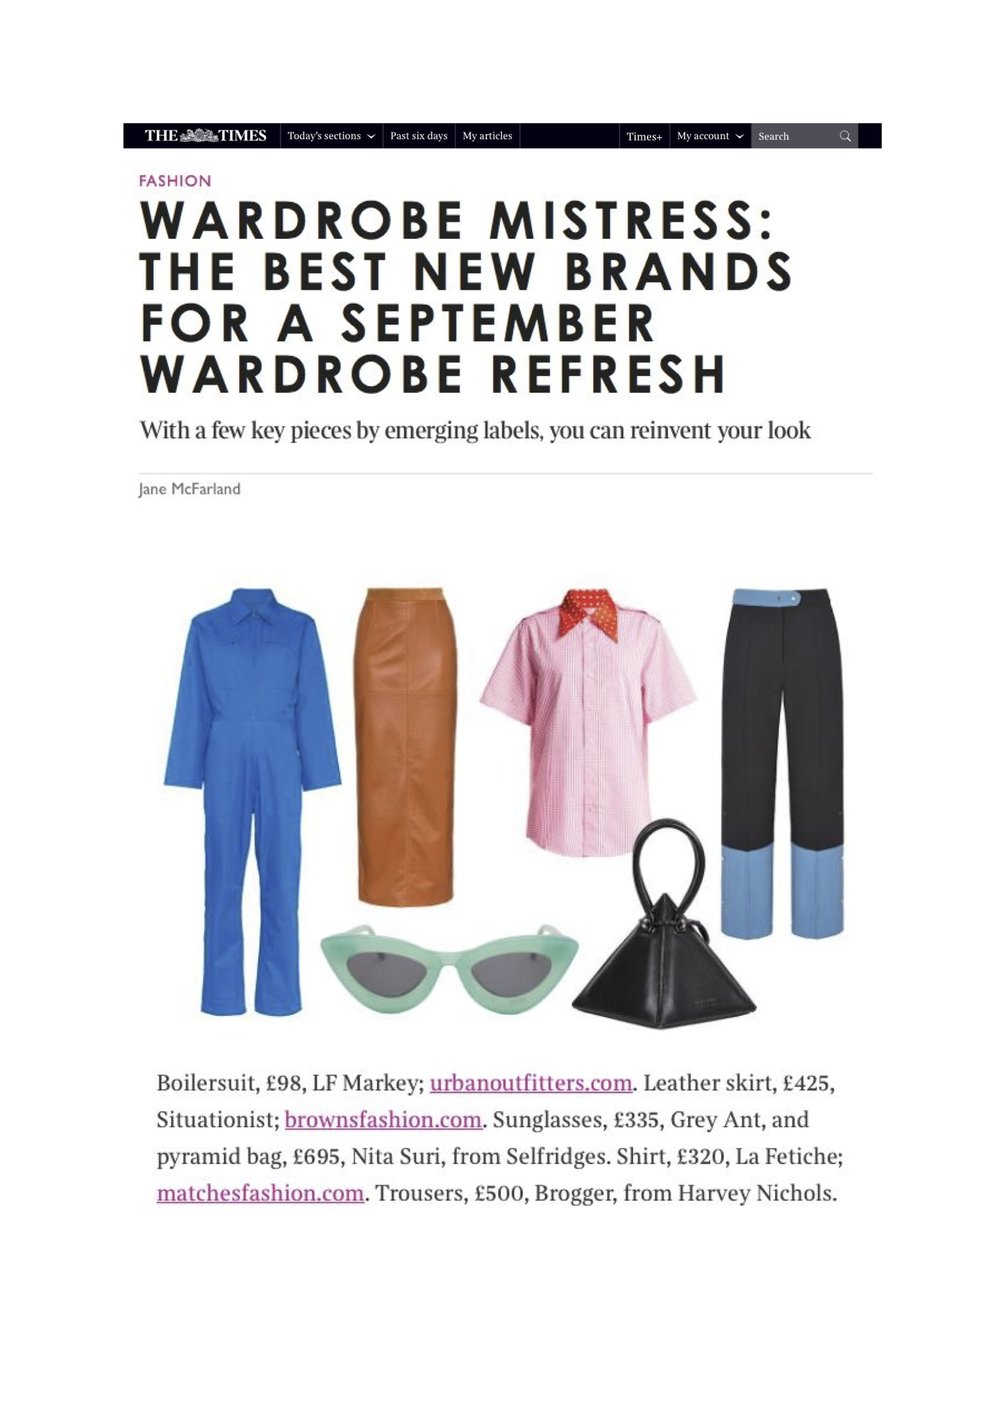 The Sunday Times Style - The Wardrobe Mistress by Jane McFarland September 2nd 2018